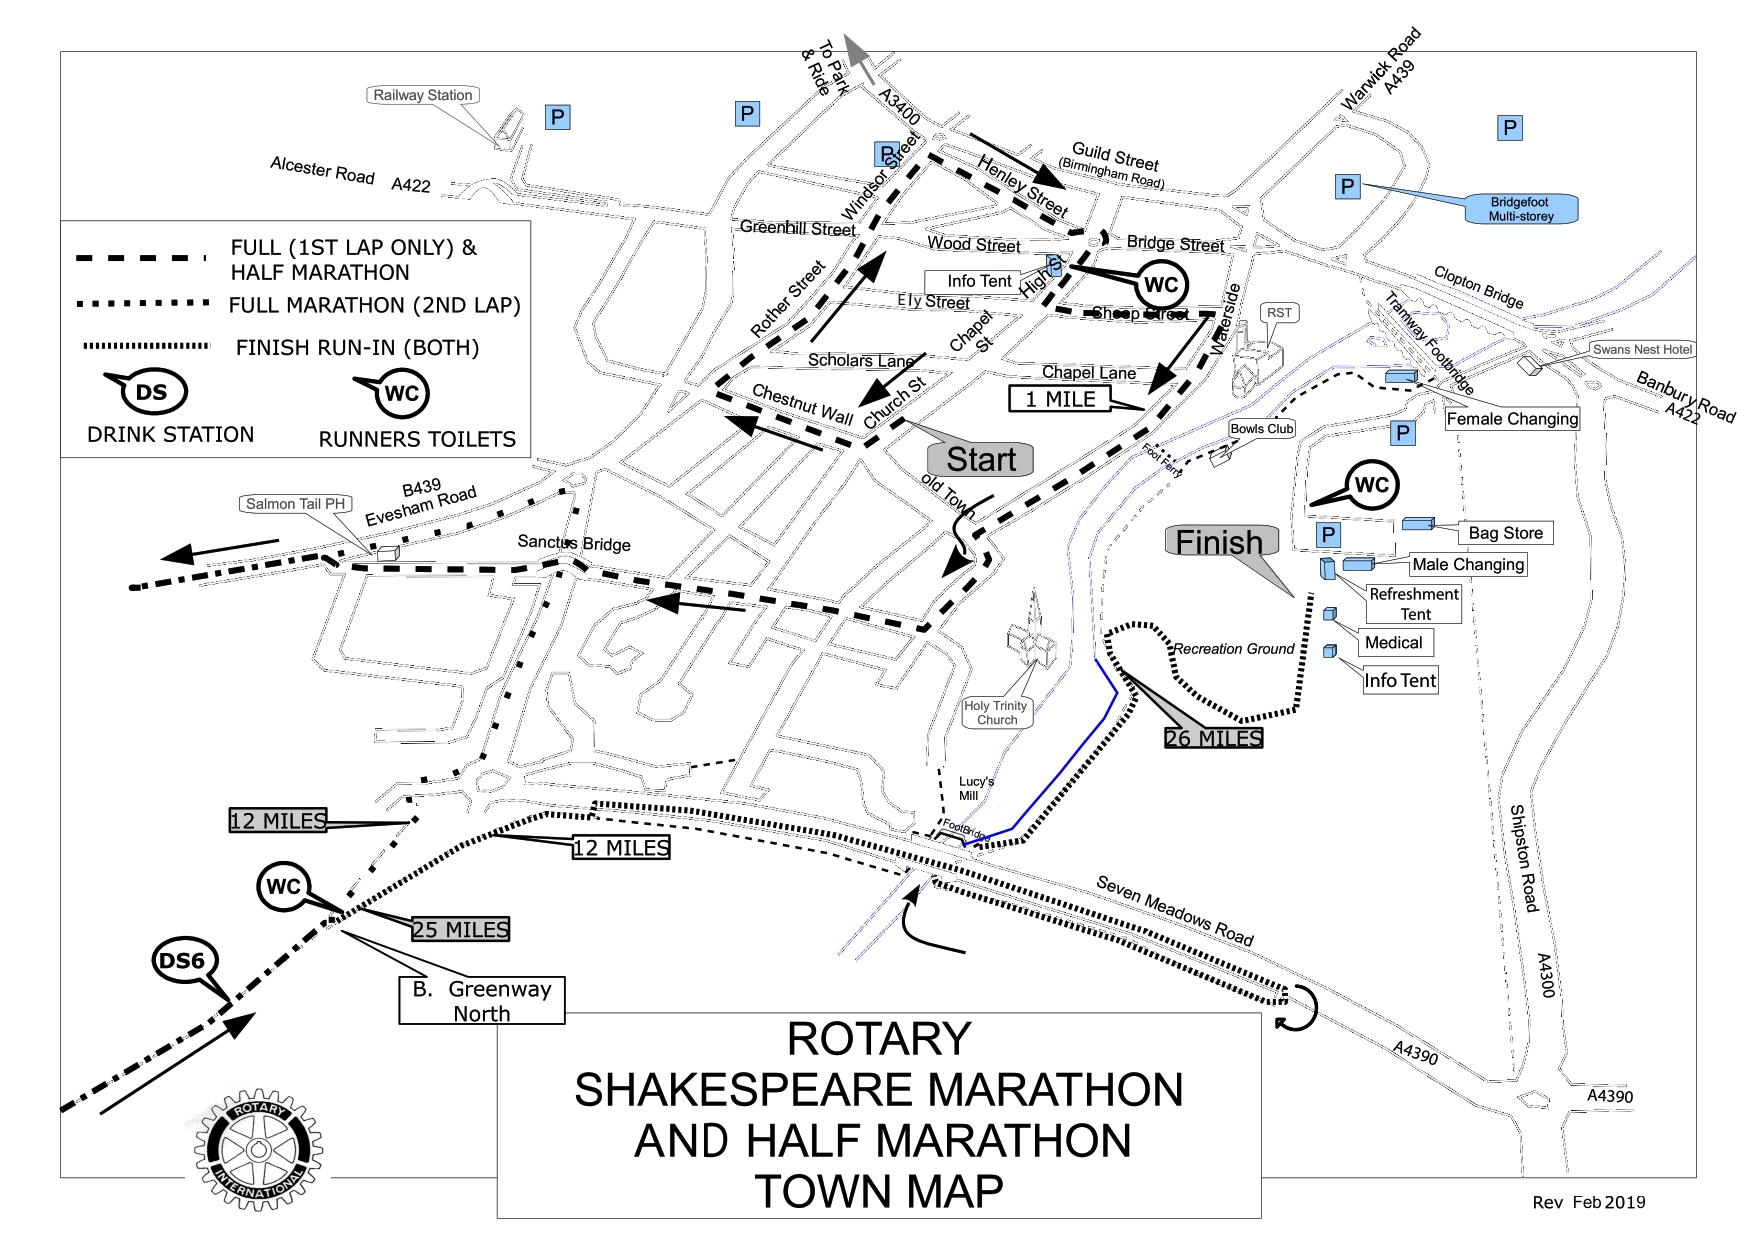 Shakespeare marathon town map stratford-upon-avon